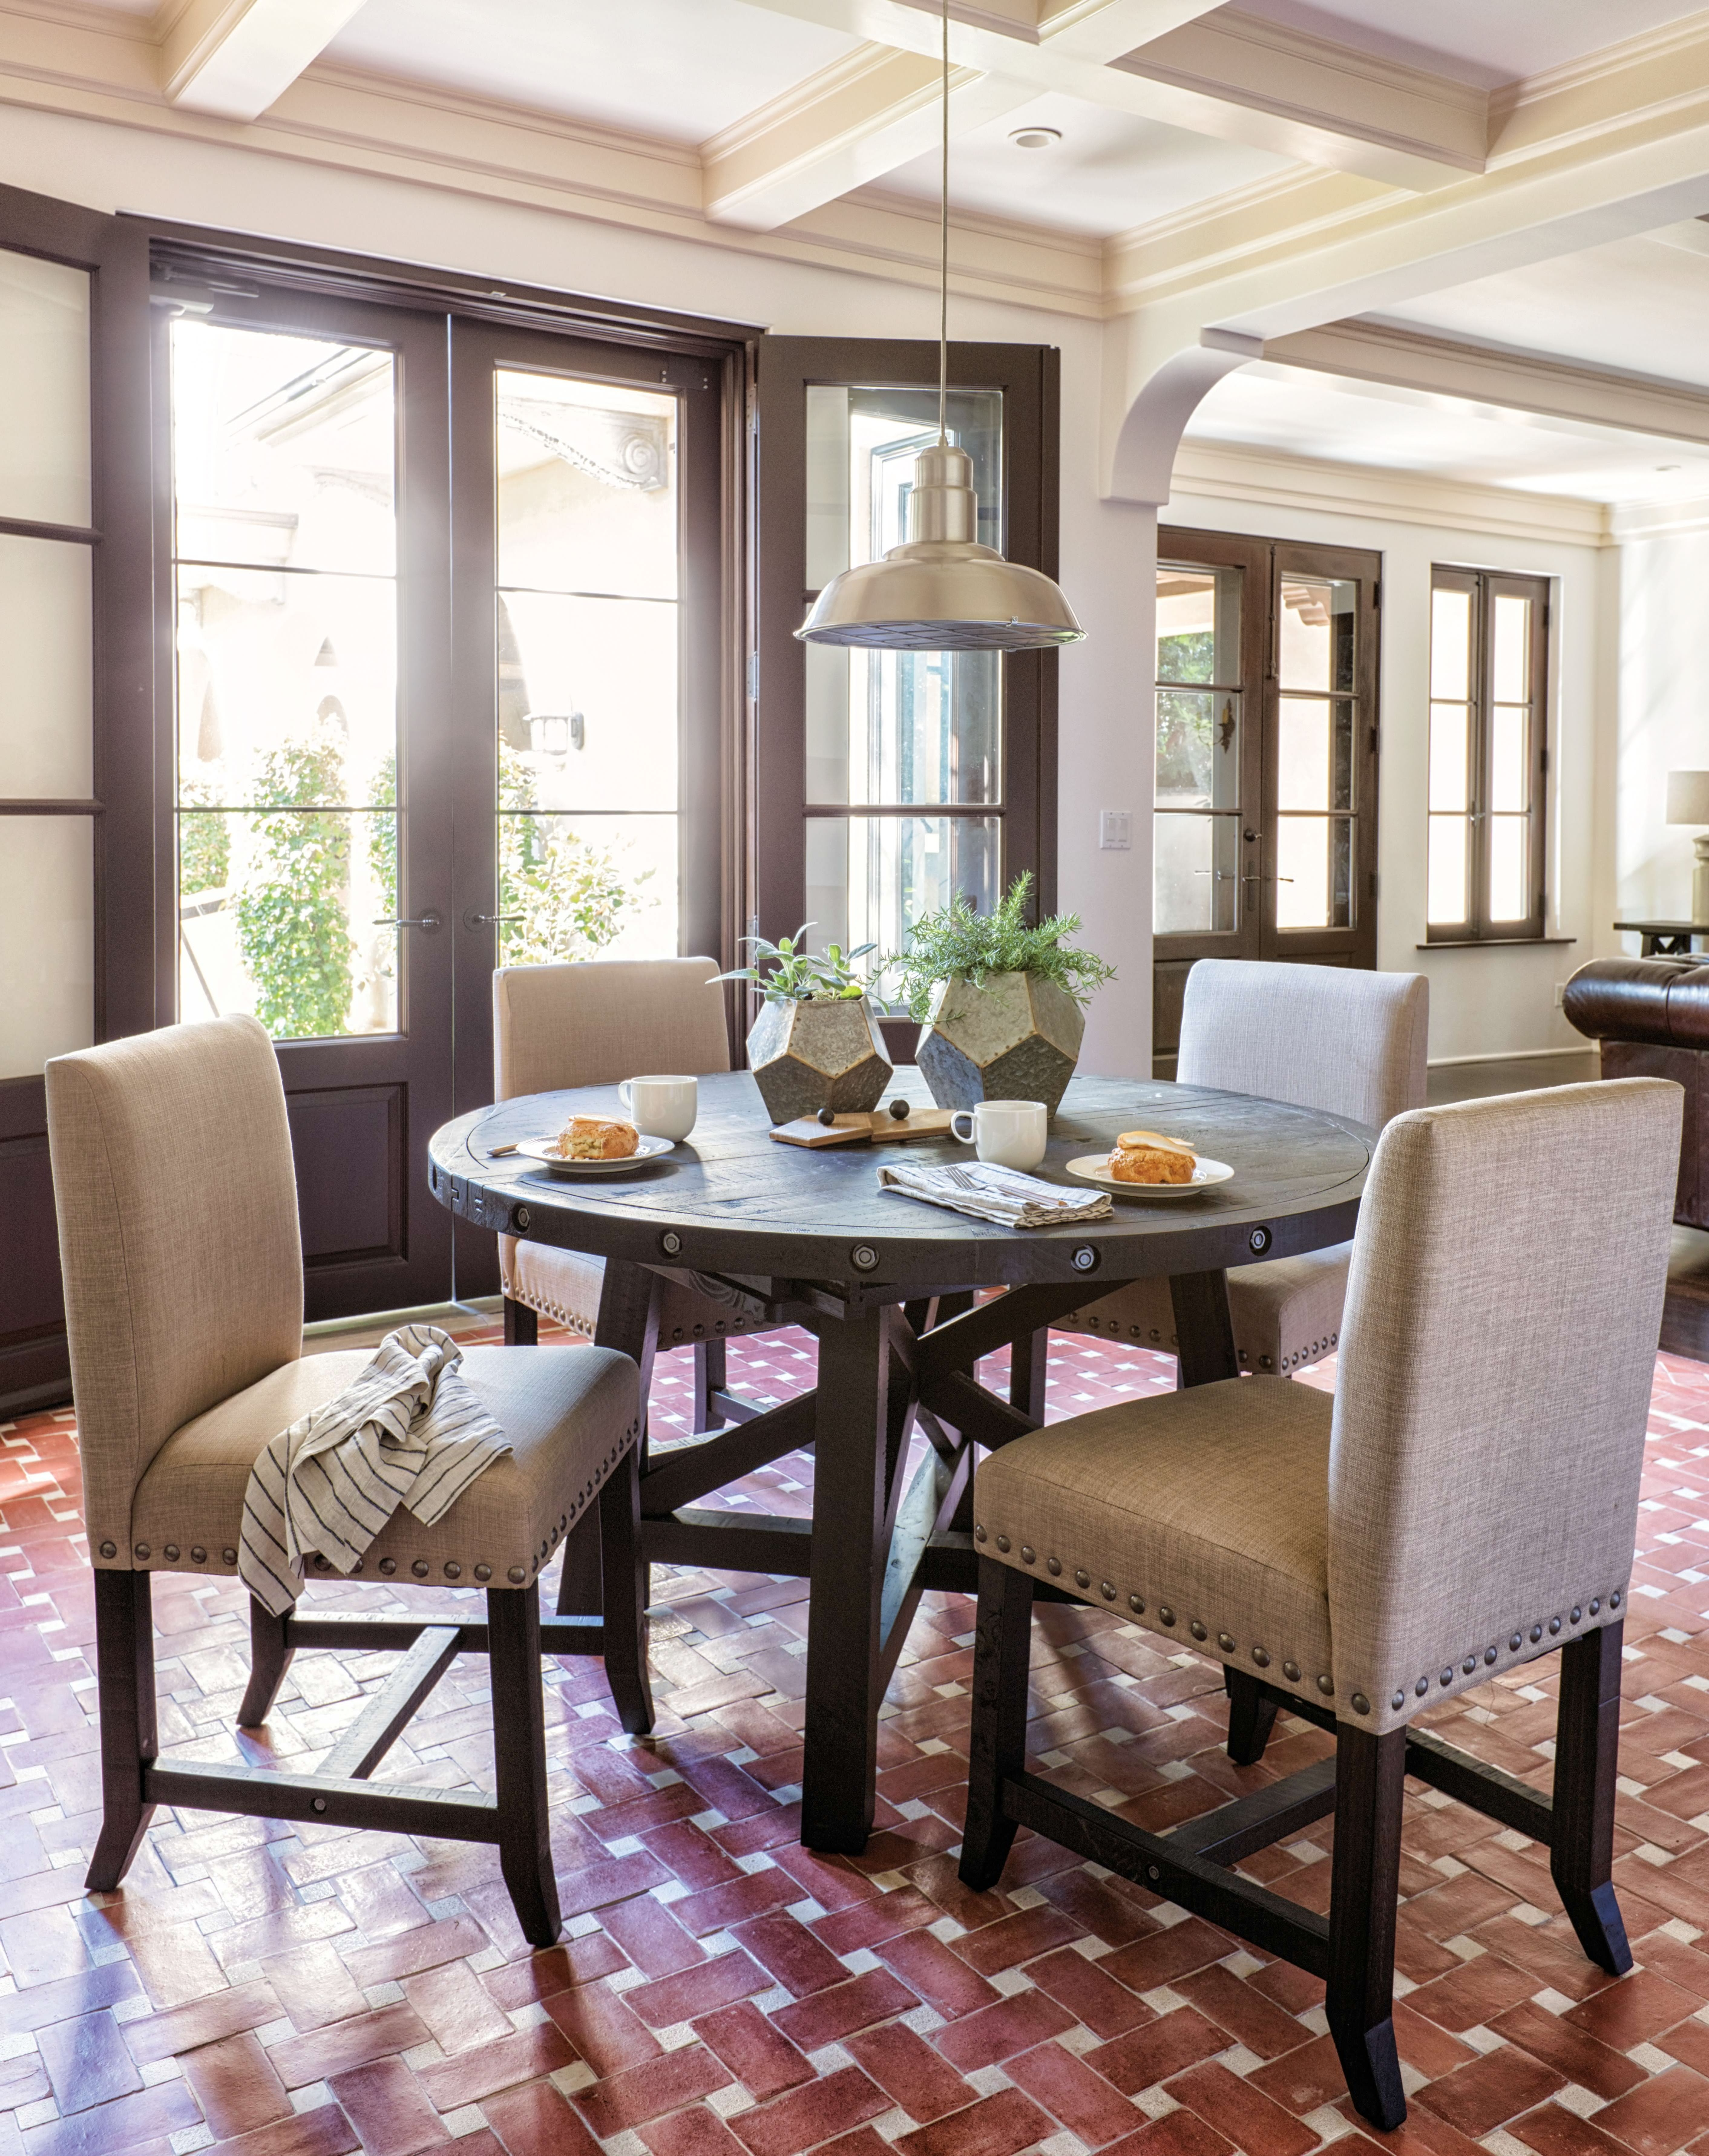 Jaxon 5 Piece Extension Round Dining Sets With Wood Chairs Within Well Known Jaxon 5 Piece Round Dining Set. This Dining Room Set Offers The (Gallery 5 of 25)